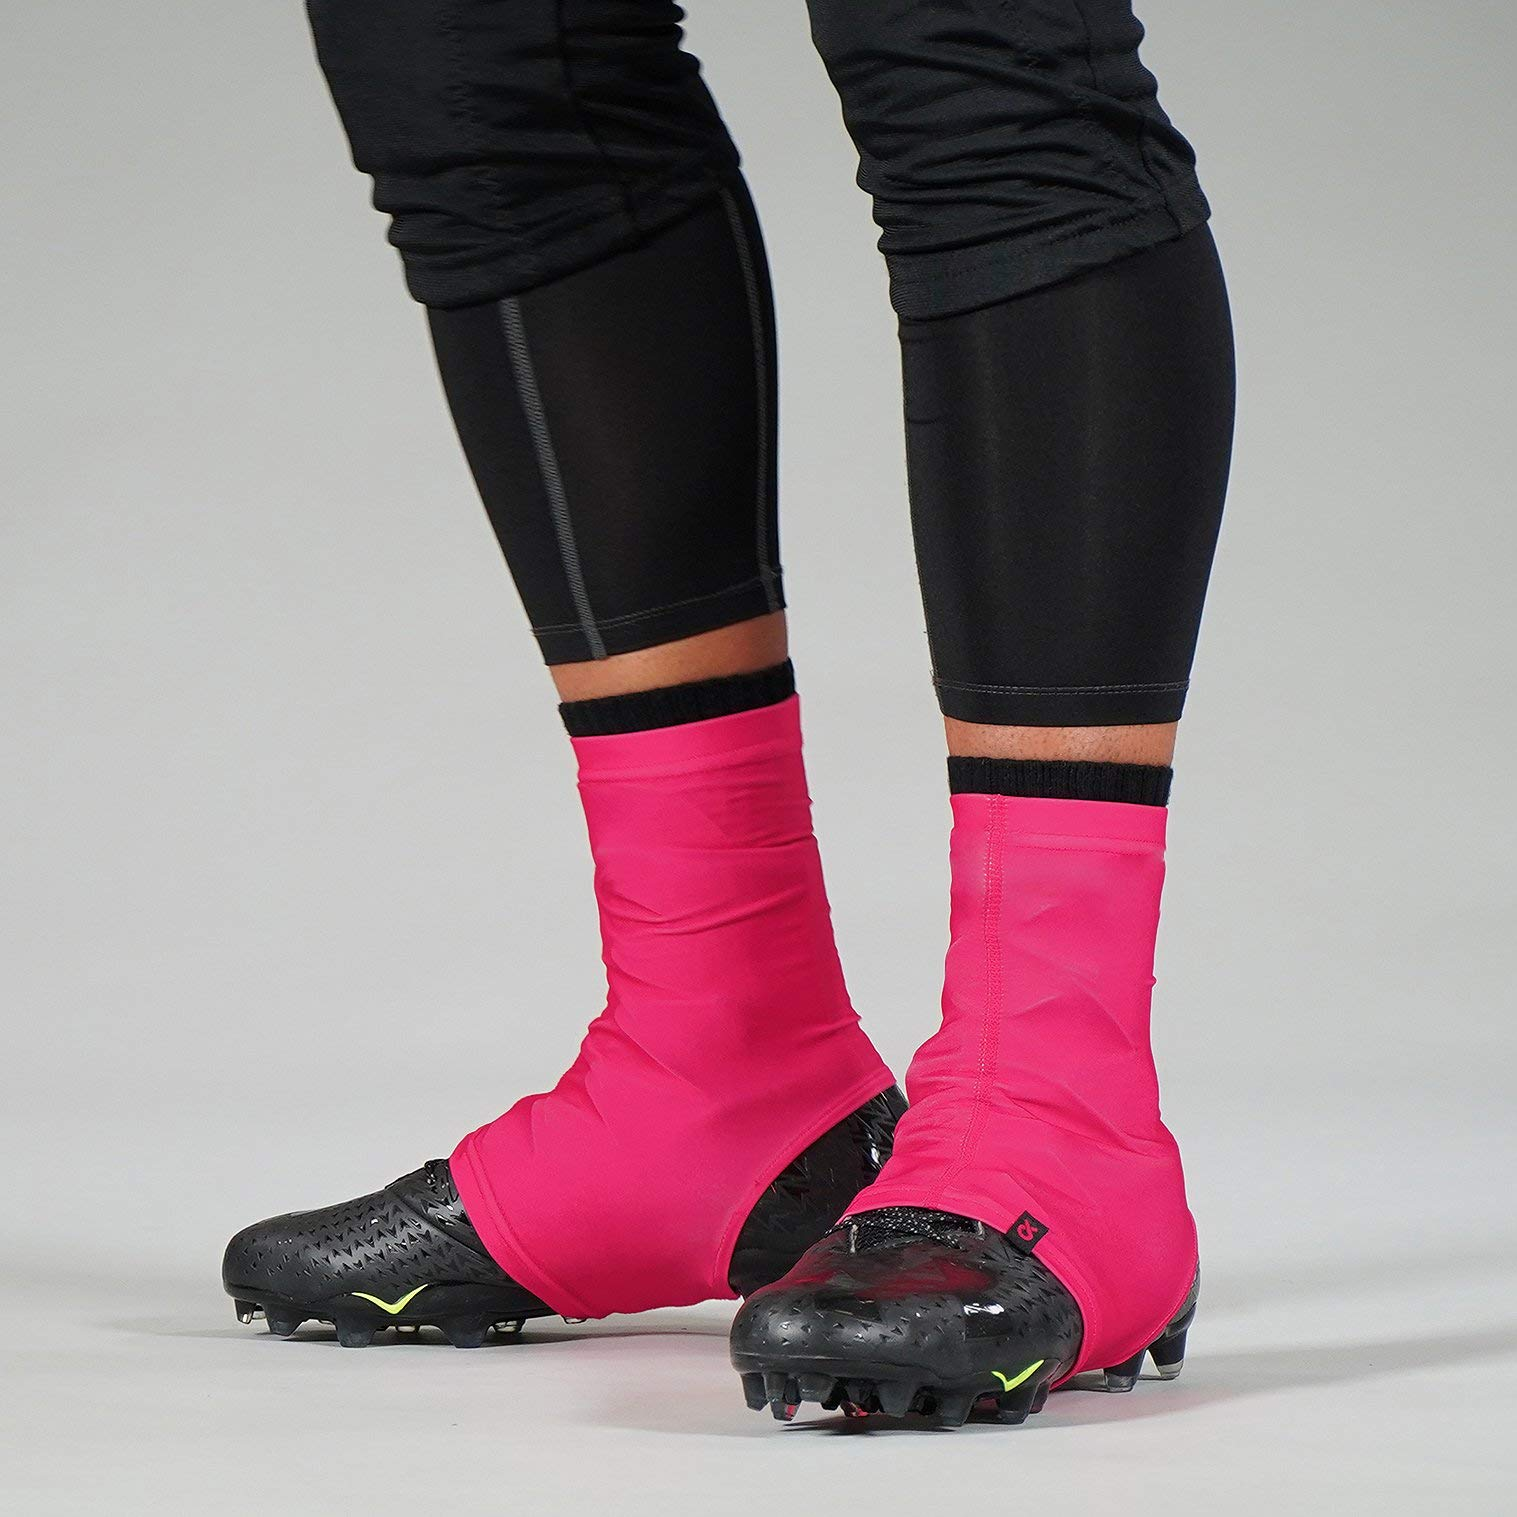 Hot Pink Ribbon Spats/Cleat Covers by SLEEFS